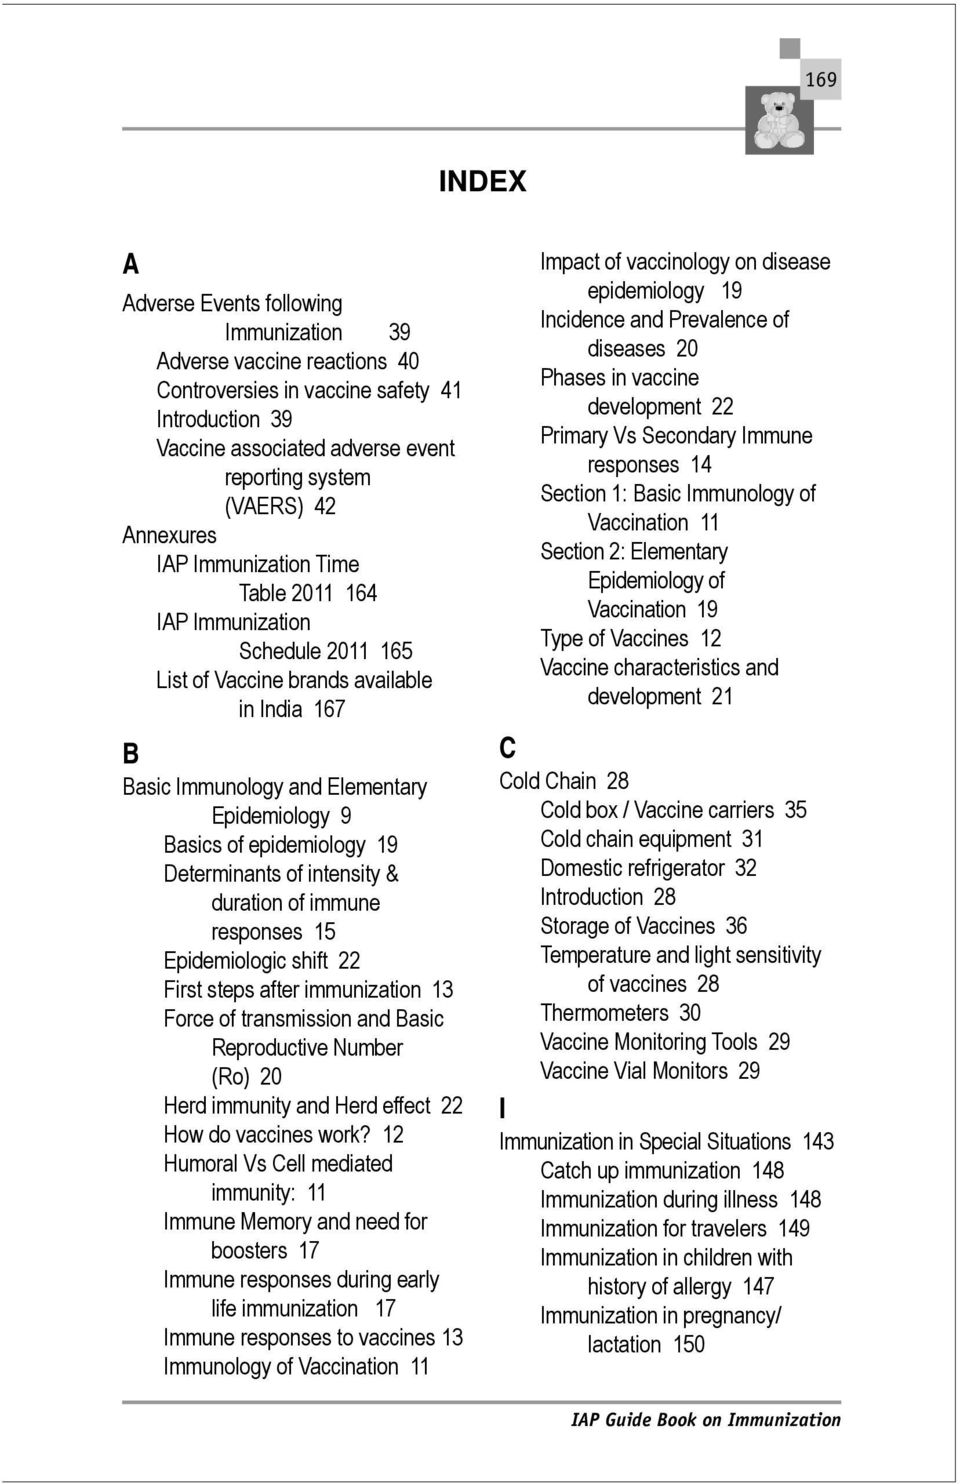 19 Determinants of intensity & duration of immune responses 15 Epidemiologic shift 22 First steps after immunization 13 Force of transmission and Basic Reproductive Number (Ro) 20 Herd immunity and